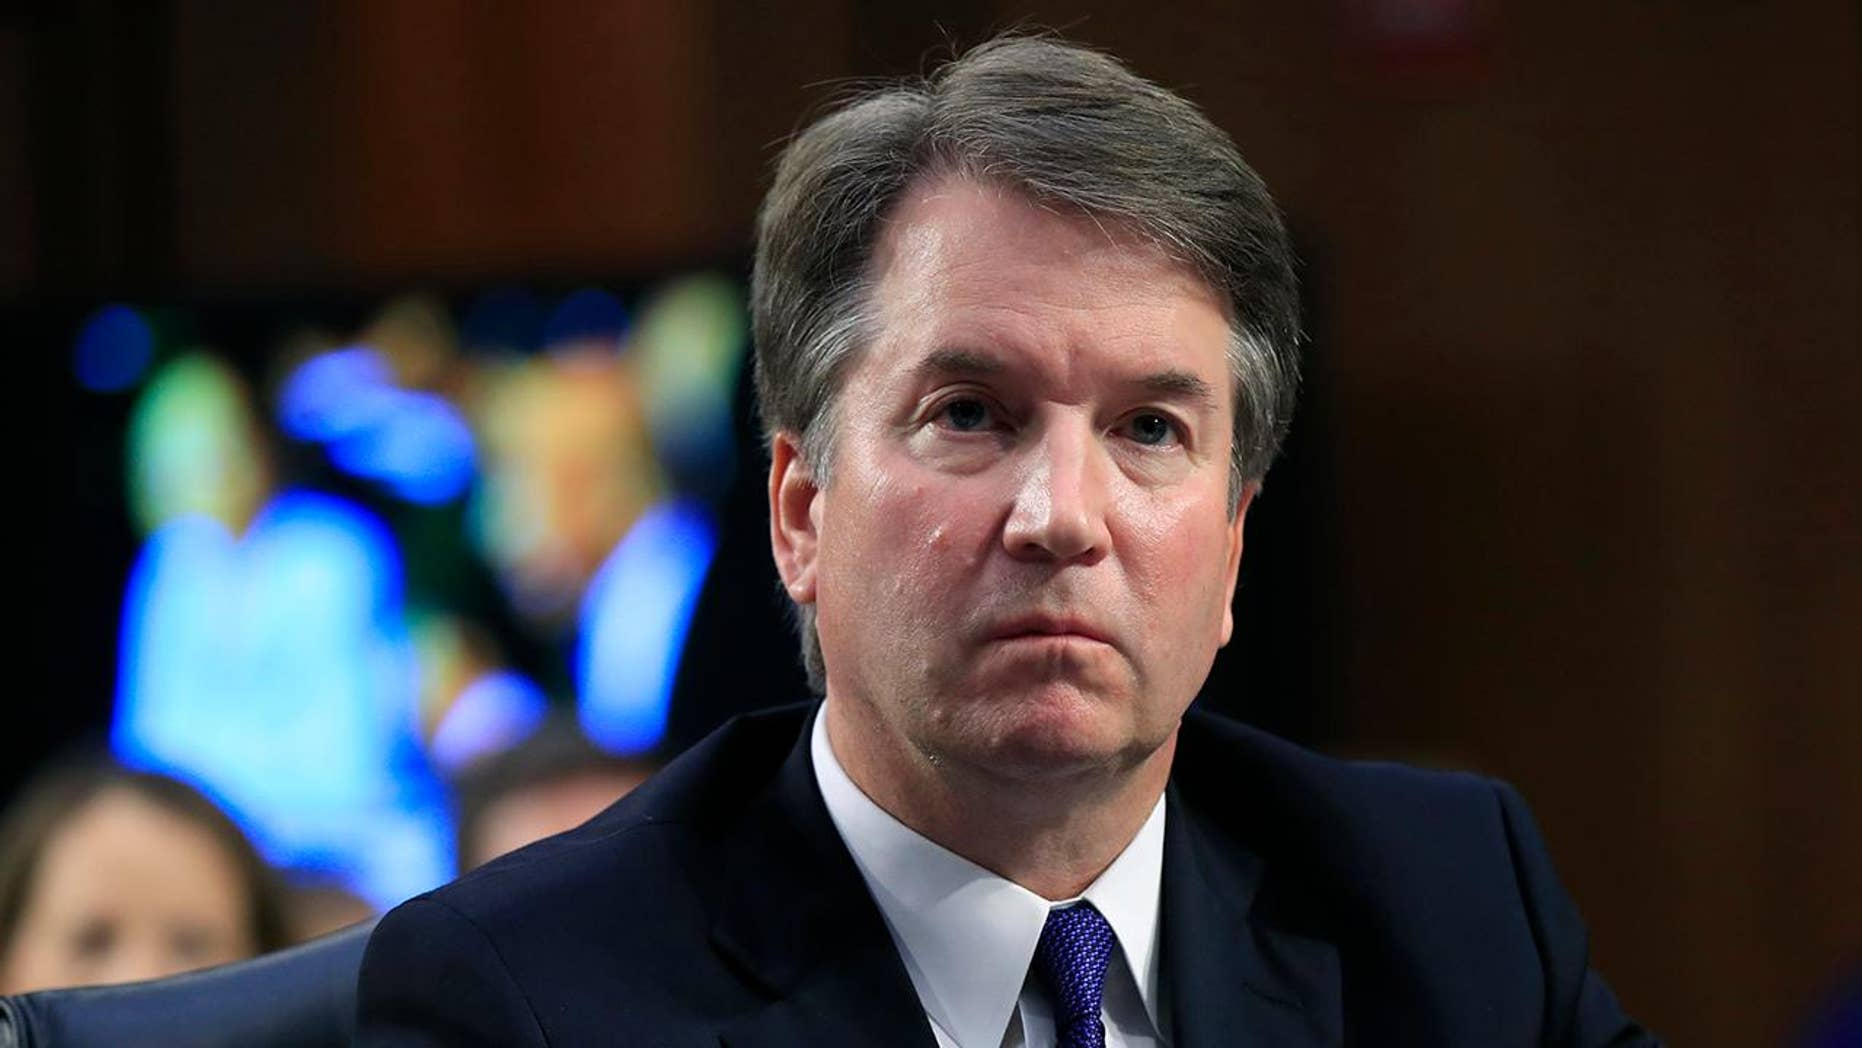 Westlake Legal Group Kavanaugh This Day in History: Oct. 9 fox-news/us/this-day-in-history fox news fnc/us fnc f0d9514f-93b9-5e6f-b318-e0d1a04c8351 article